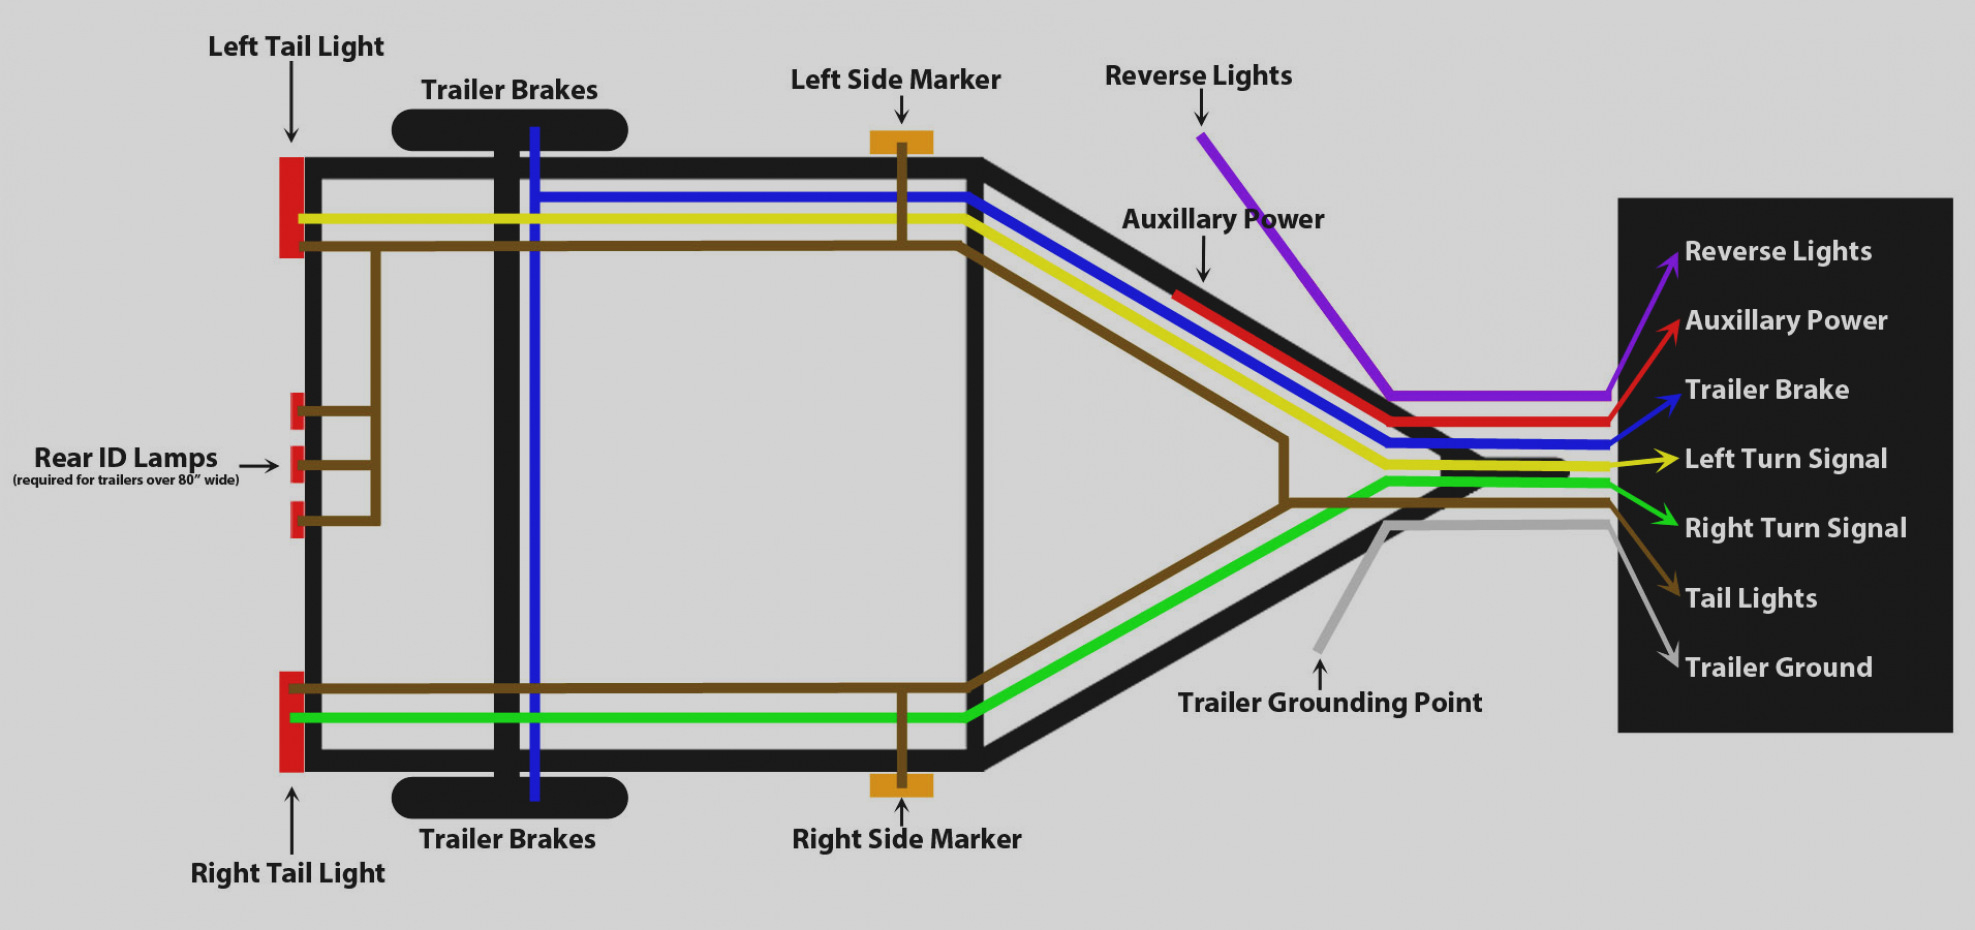 5 Pin Trailer Wiring Color Diagram | Wiring Library - 5 Pin Boat Trailer Wiring Diagram